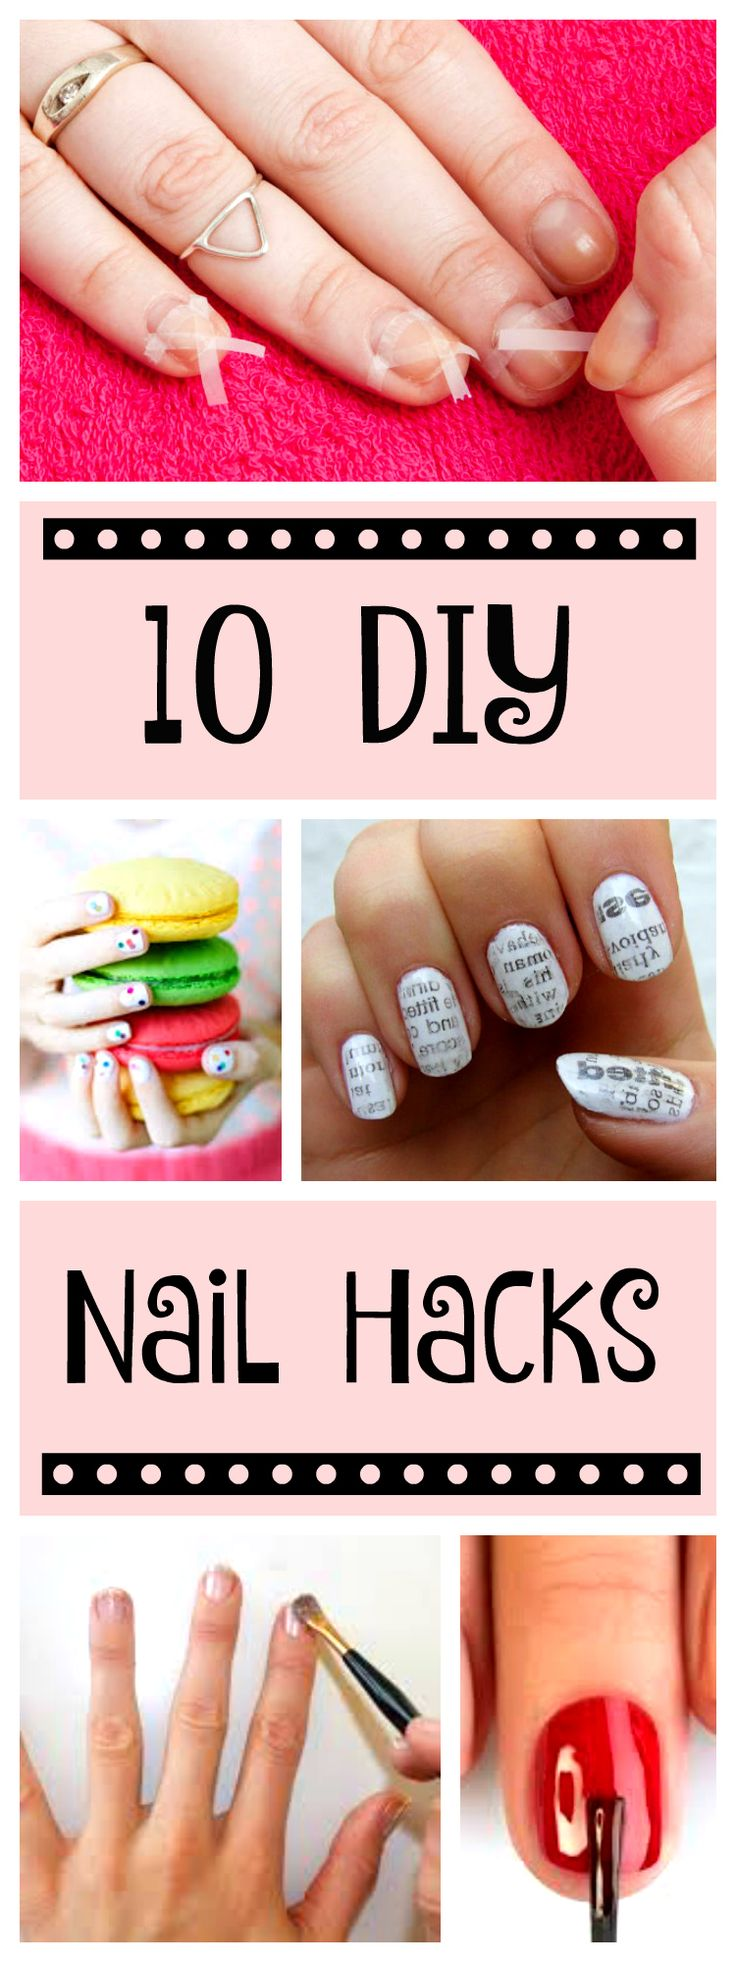 Nail polish design hacks the best inspiration for design and color 25 best ideas about nail hacks on pinterest diy nails easy nail designs and nail art tutorials solutioingenieria Choice Image